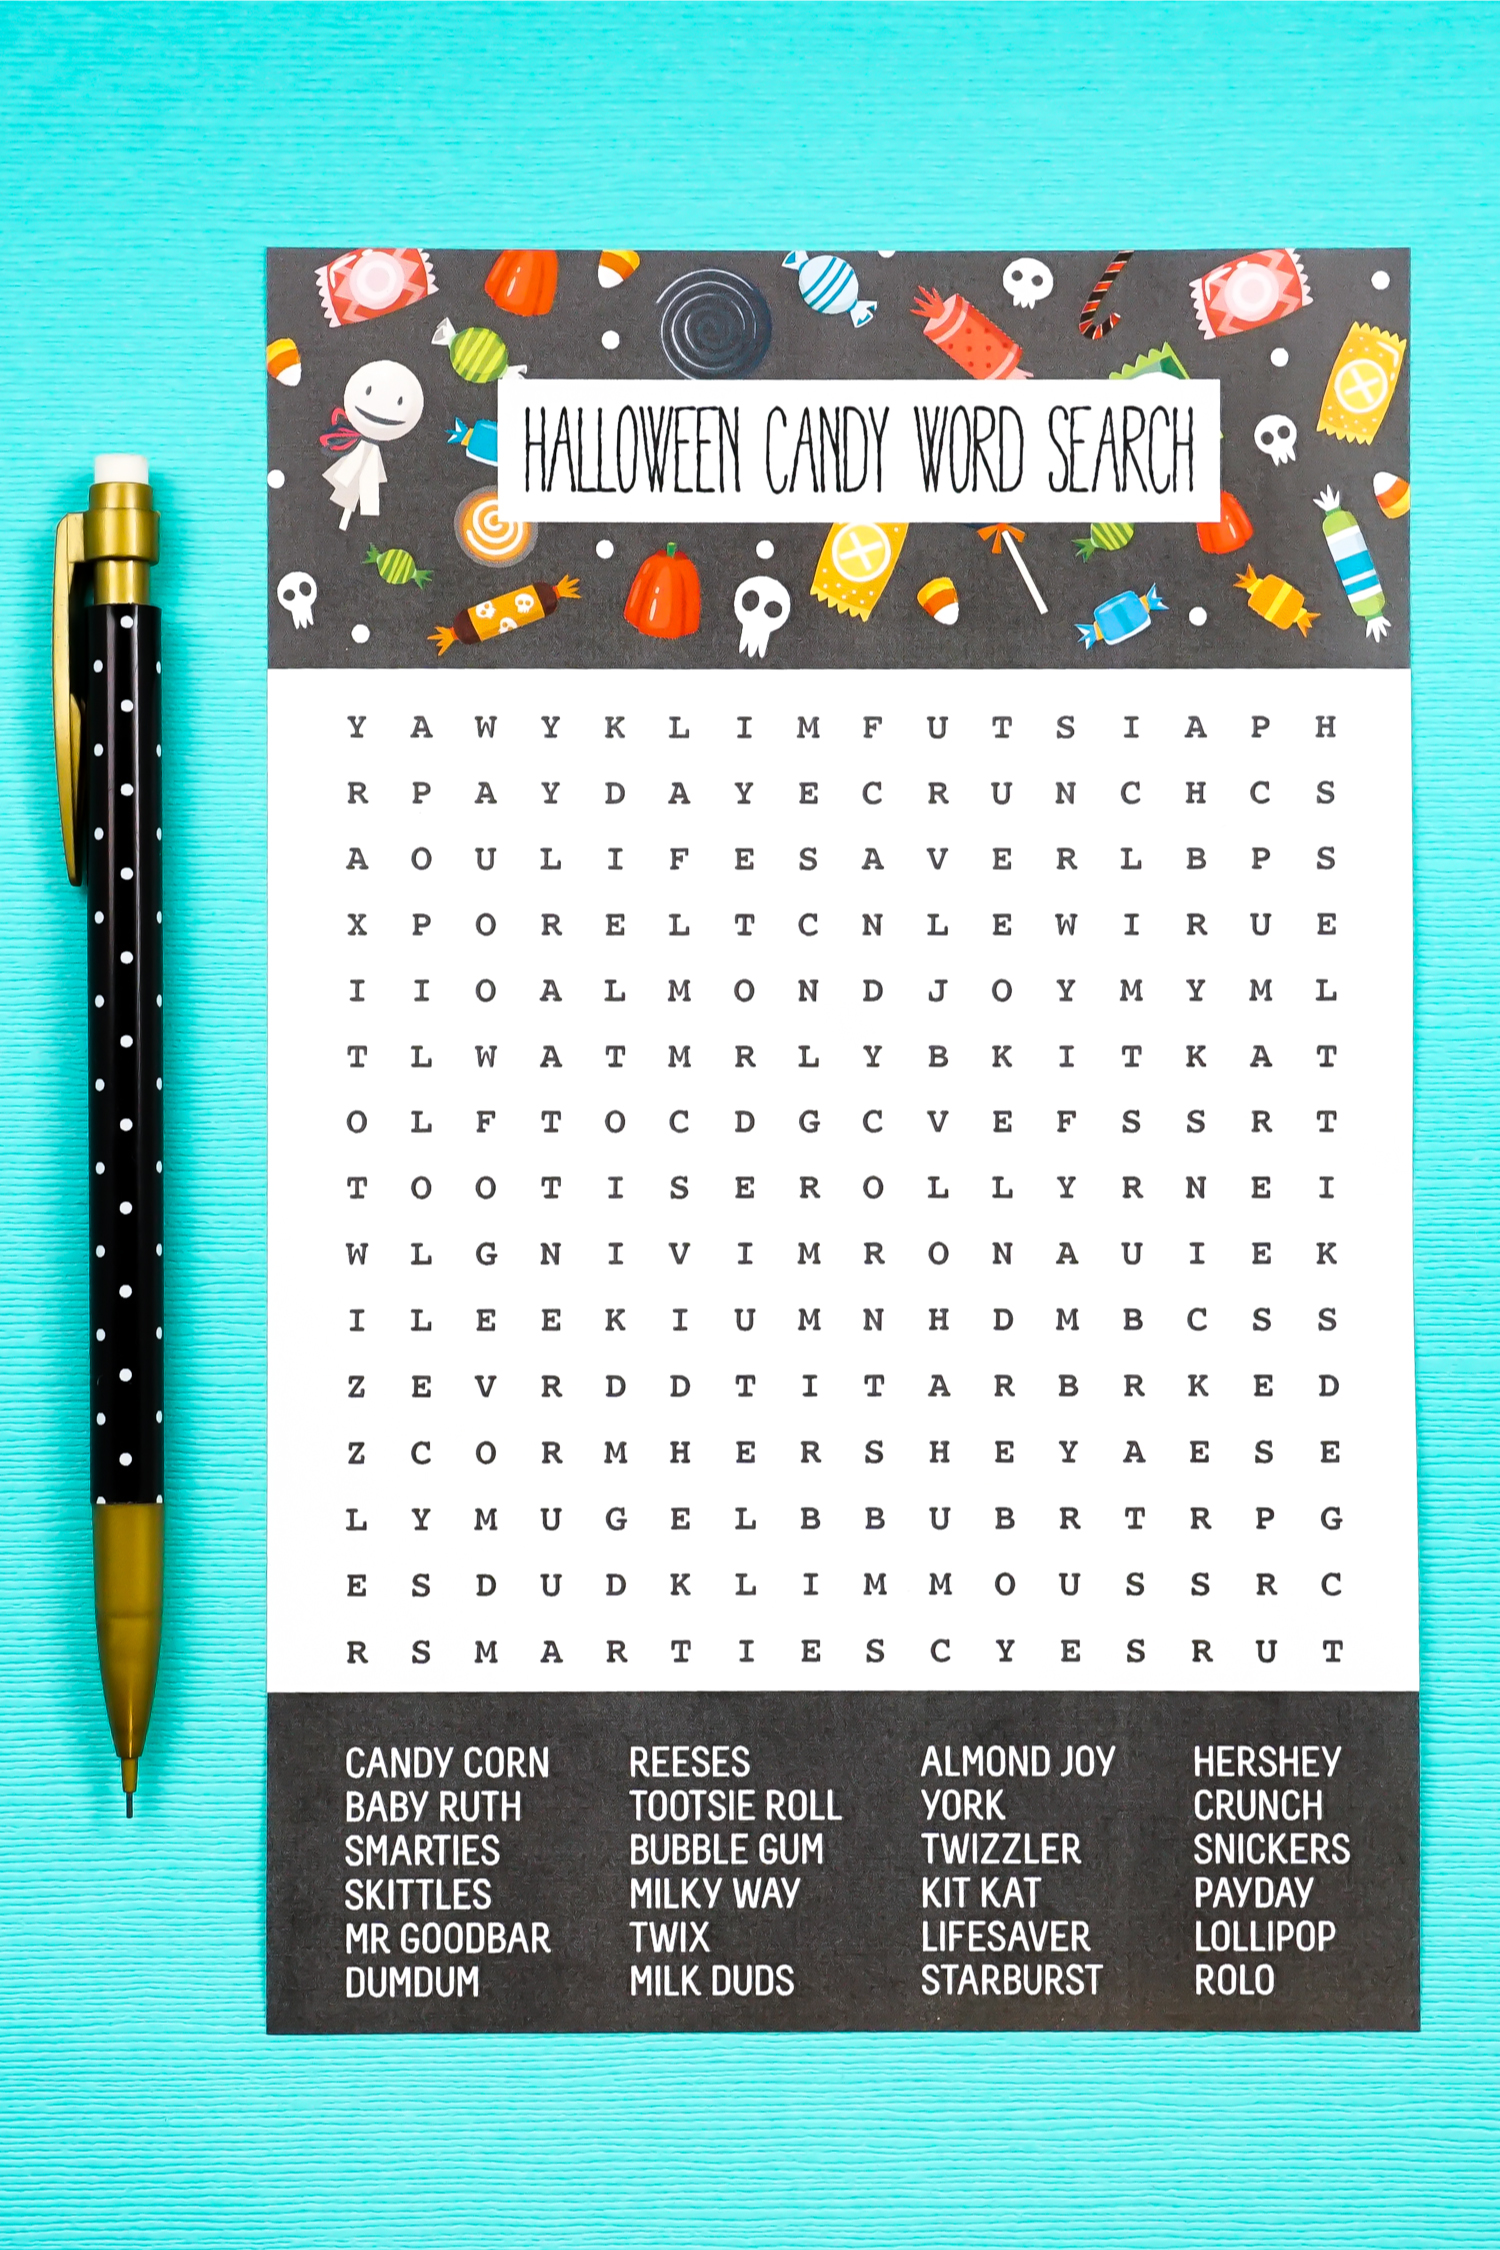 Who doesn't love Halloween candy? Find all your favorites in this free printable Halloween word search! This deliciously fun activity is perfect for killing time before it's time to go trick or treating!